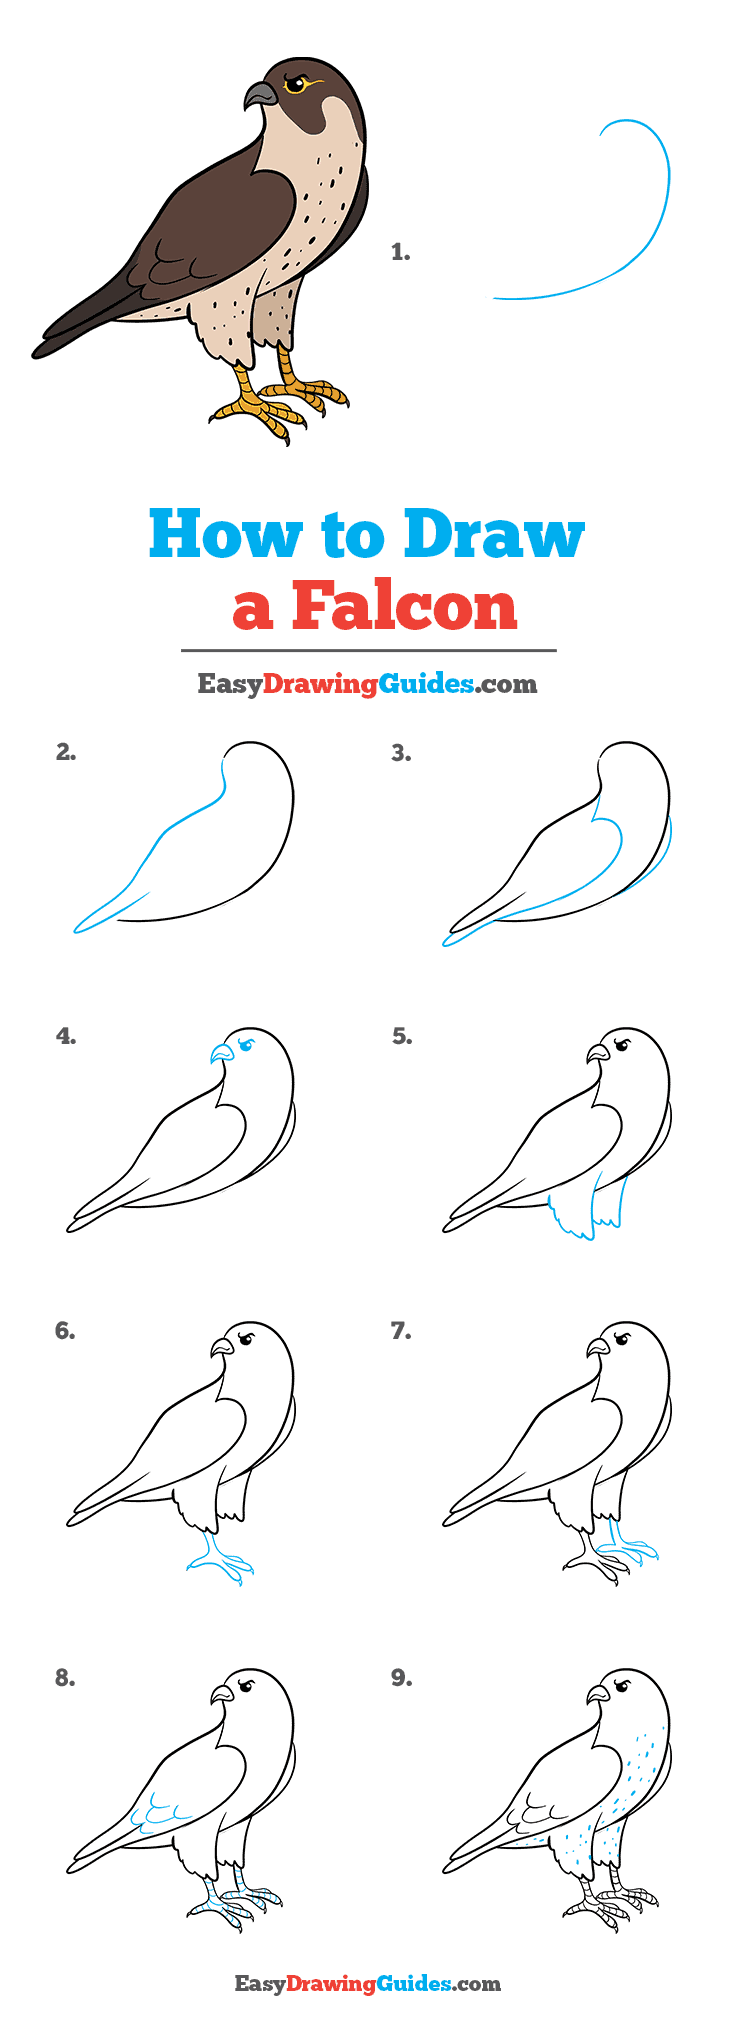 How to Draw Falcon